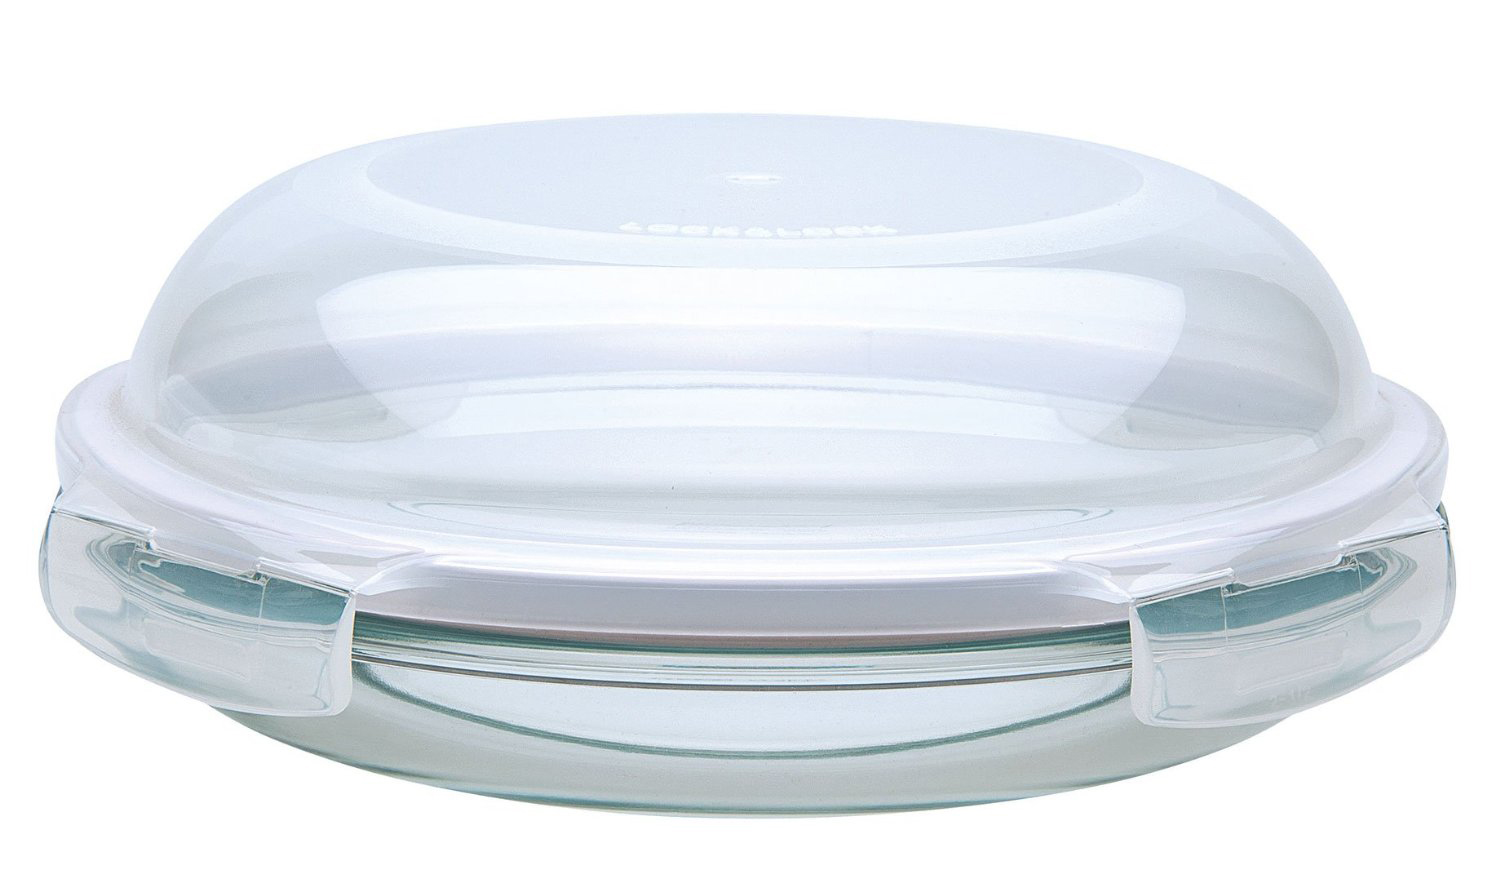 Glass Dome Cooker ~ Lock cm round glass dish with dome lid storage